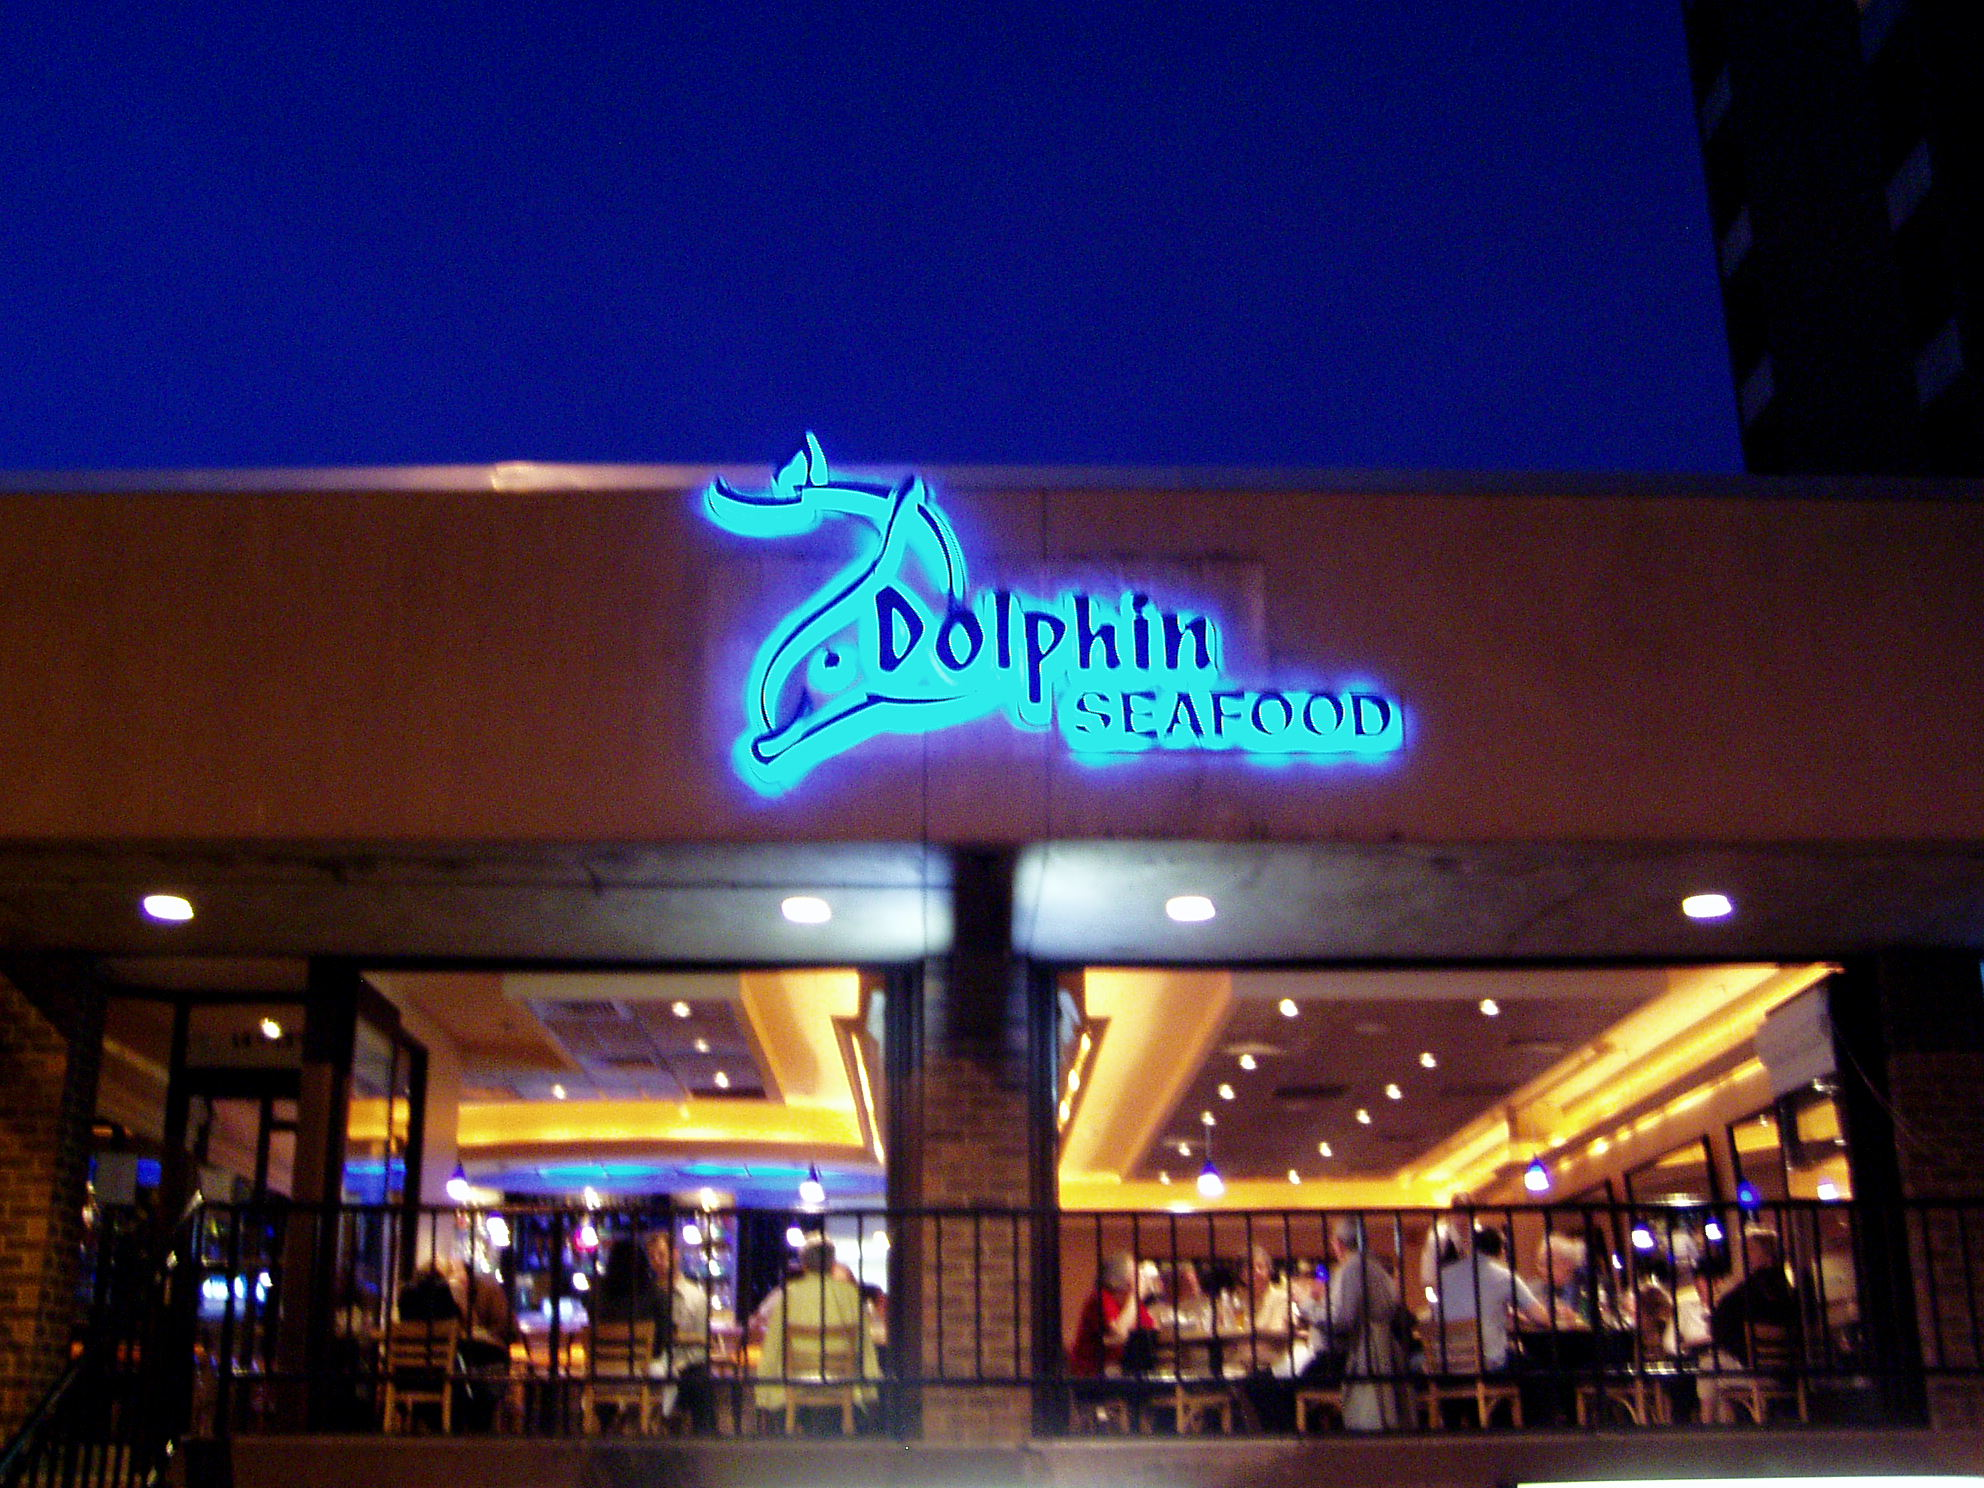 Dolphin seafood natick ma coupons